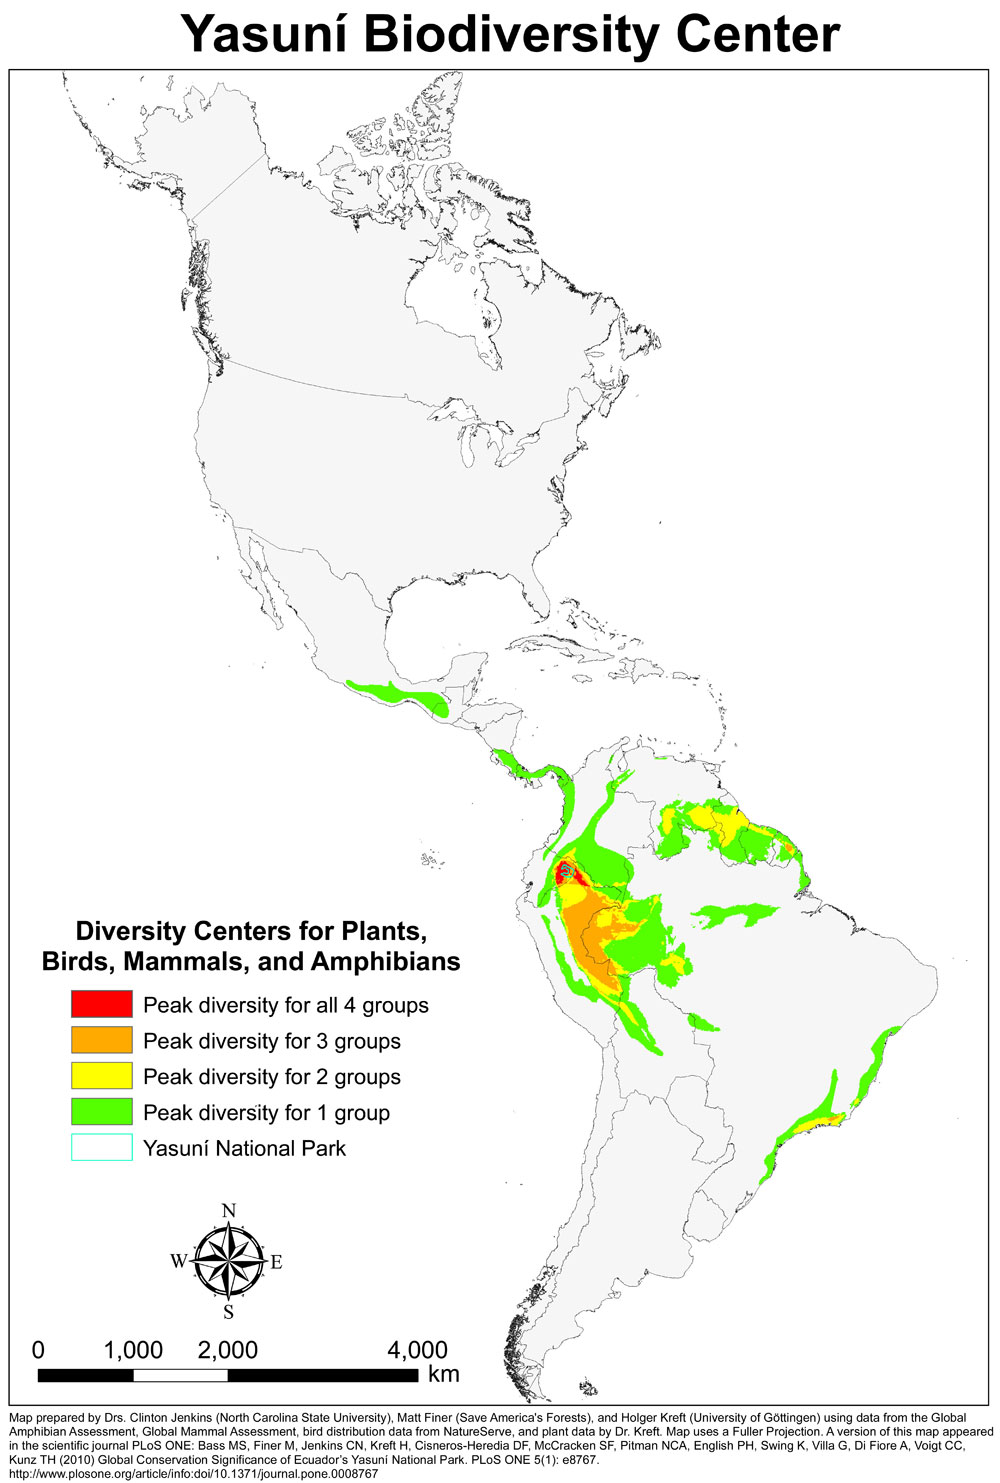 Yasuni-Biodiversity-MAP.big.jpg